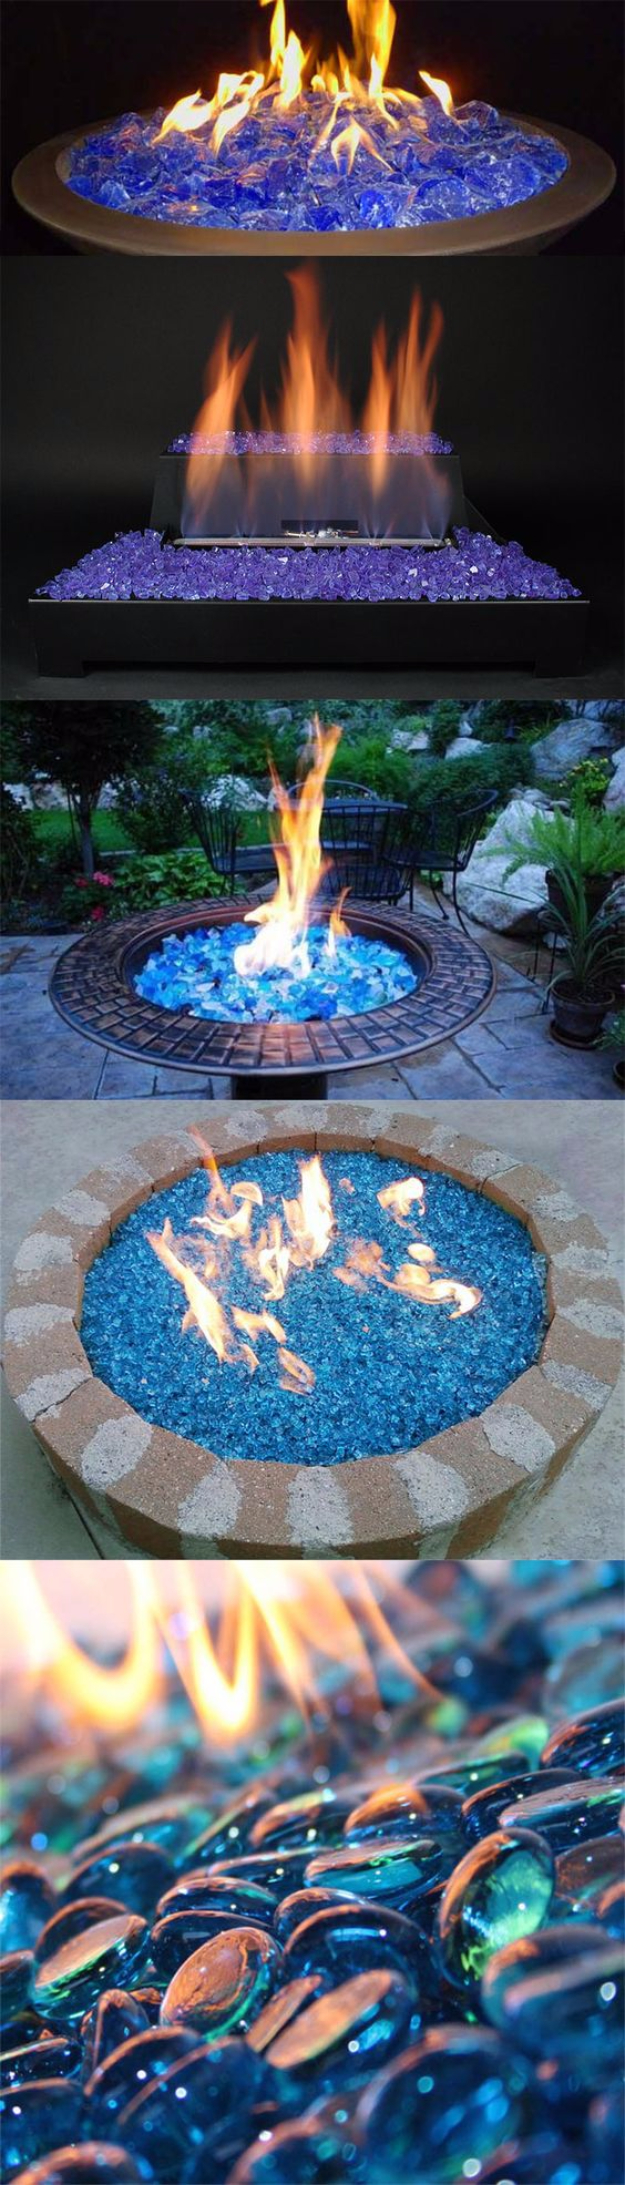 31 DIY Outdoor Fireplace and Firepit Ideas - DIY Joy on Diy Outdoor Fire  id=74930